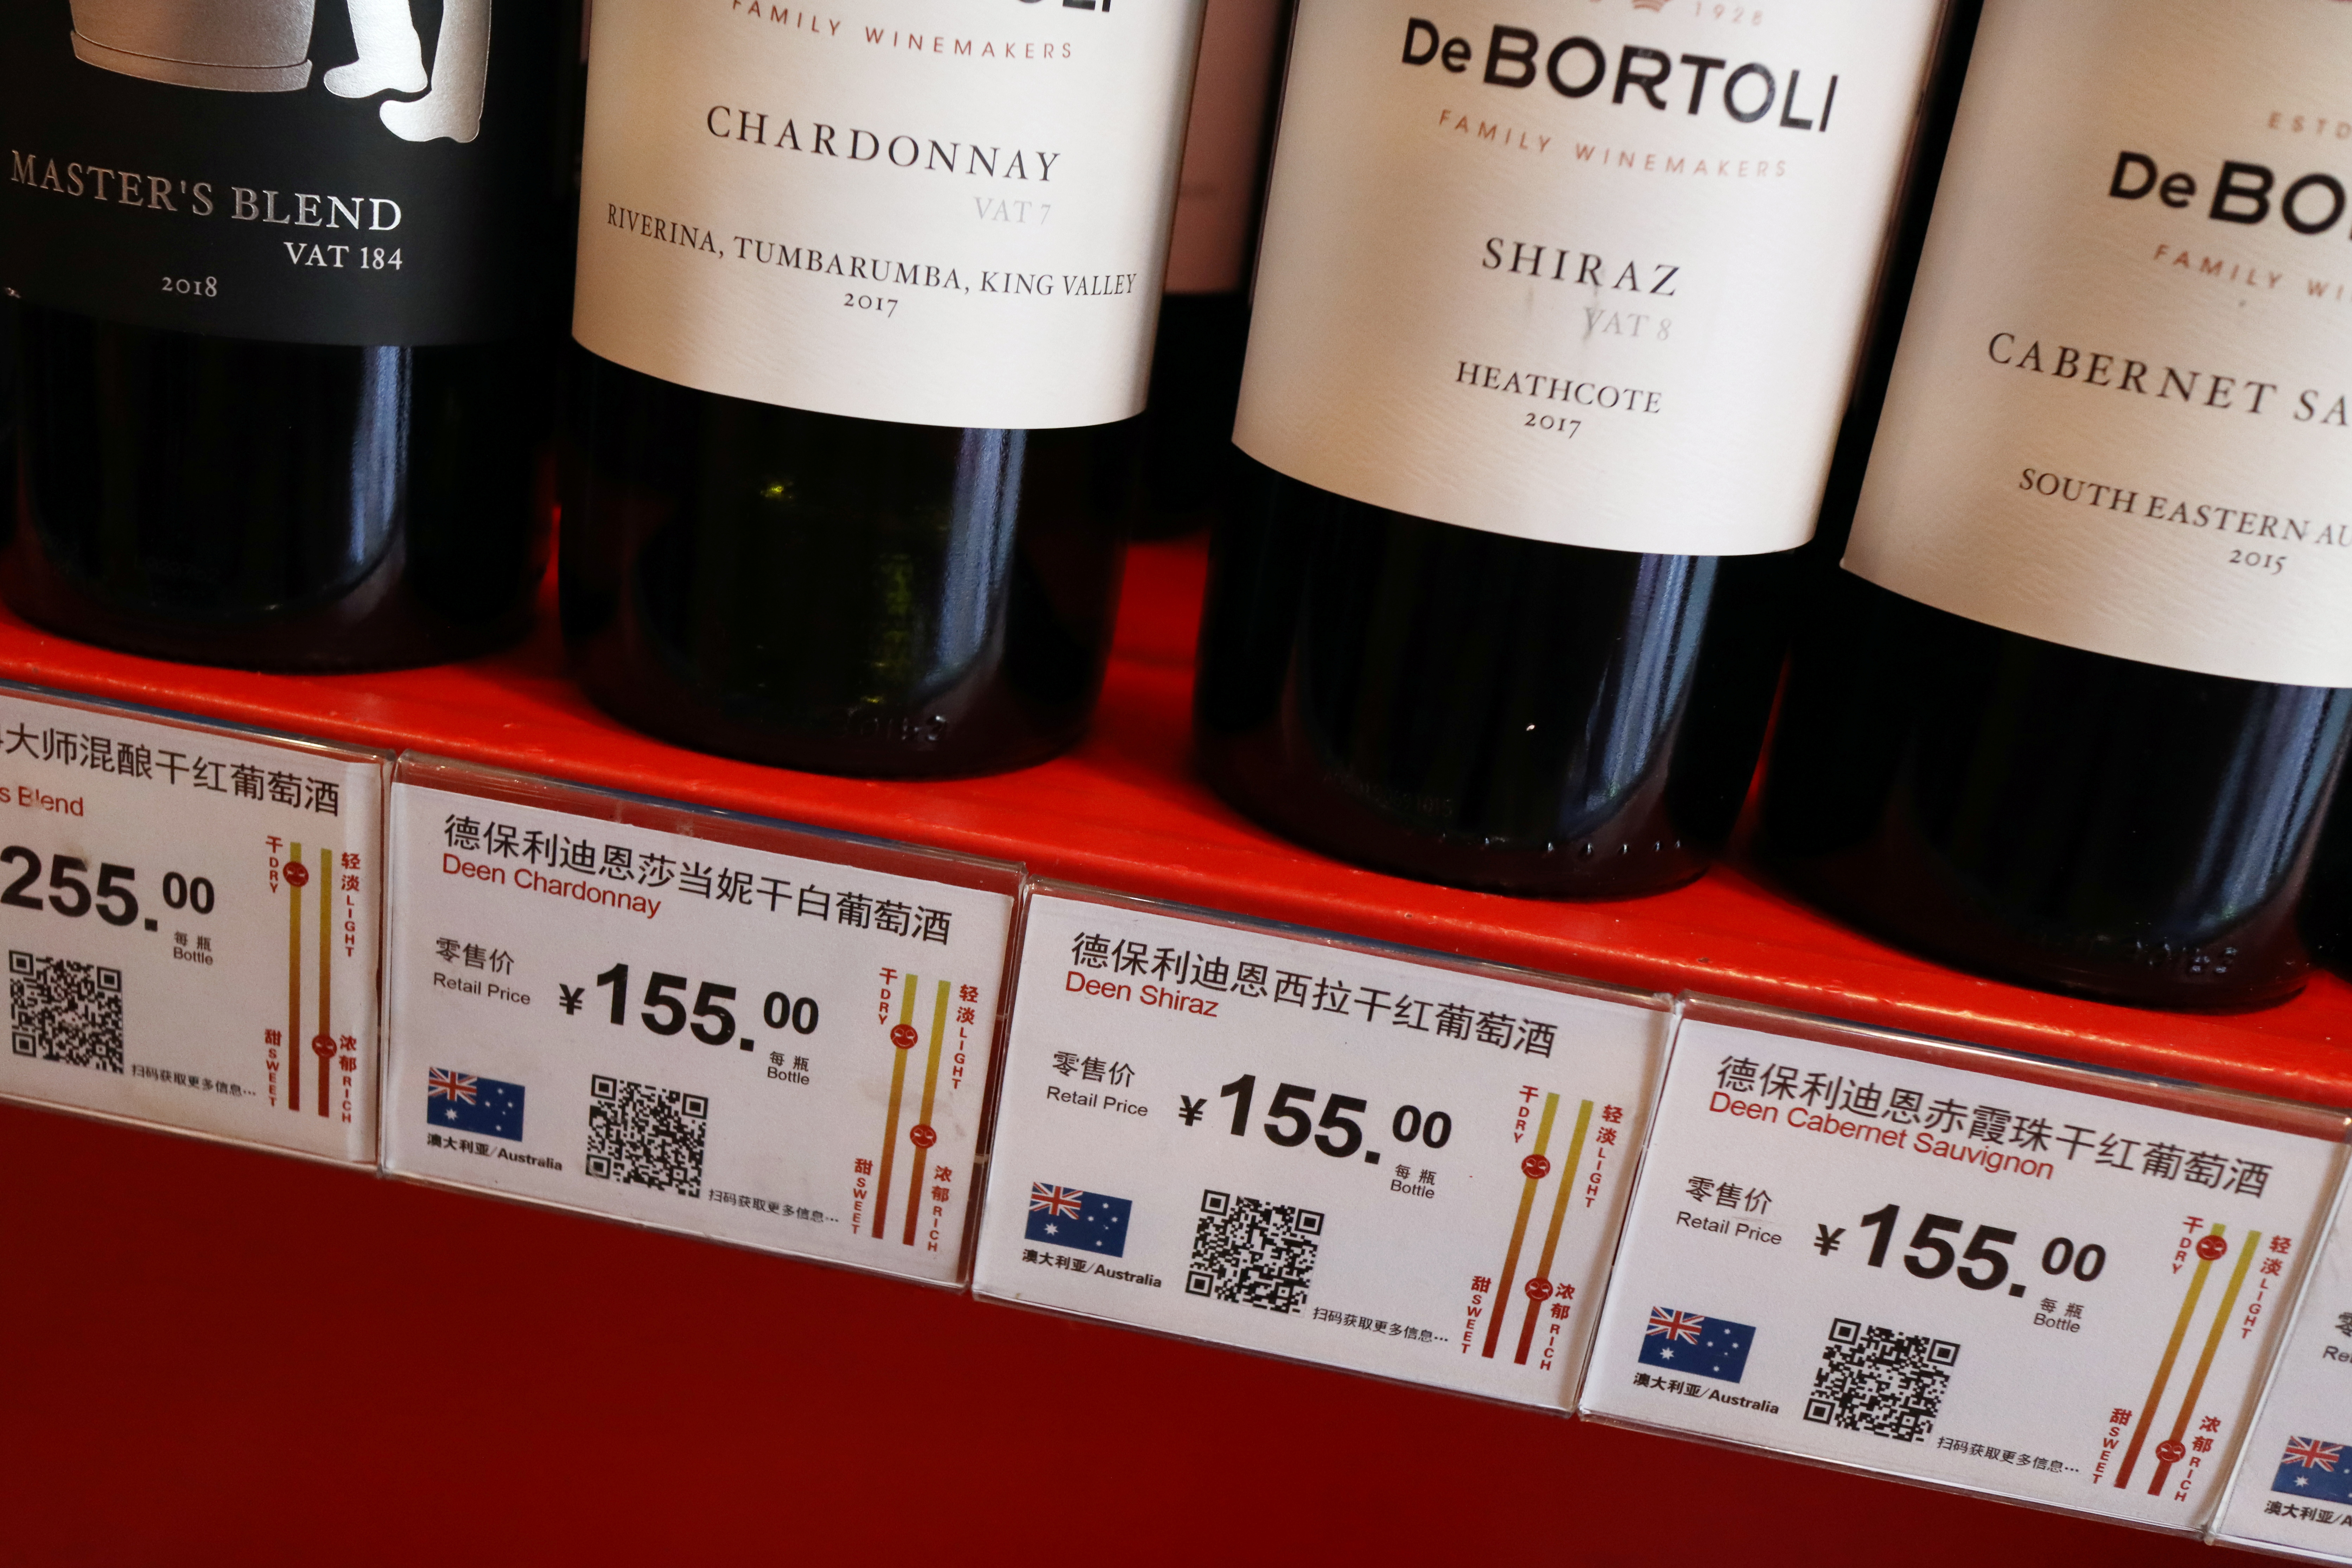 Bottles of Australian wine are seen at a store selling imported wine in Beijing, China November 27, 2020. REUTERS/Florence Lo